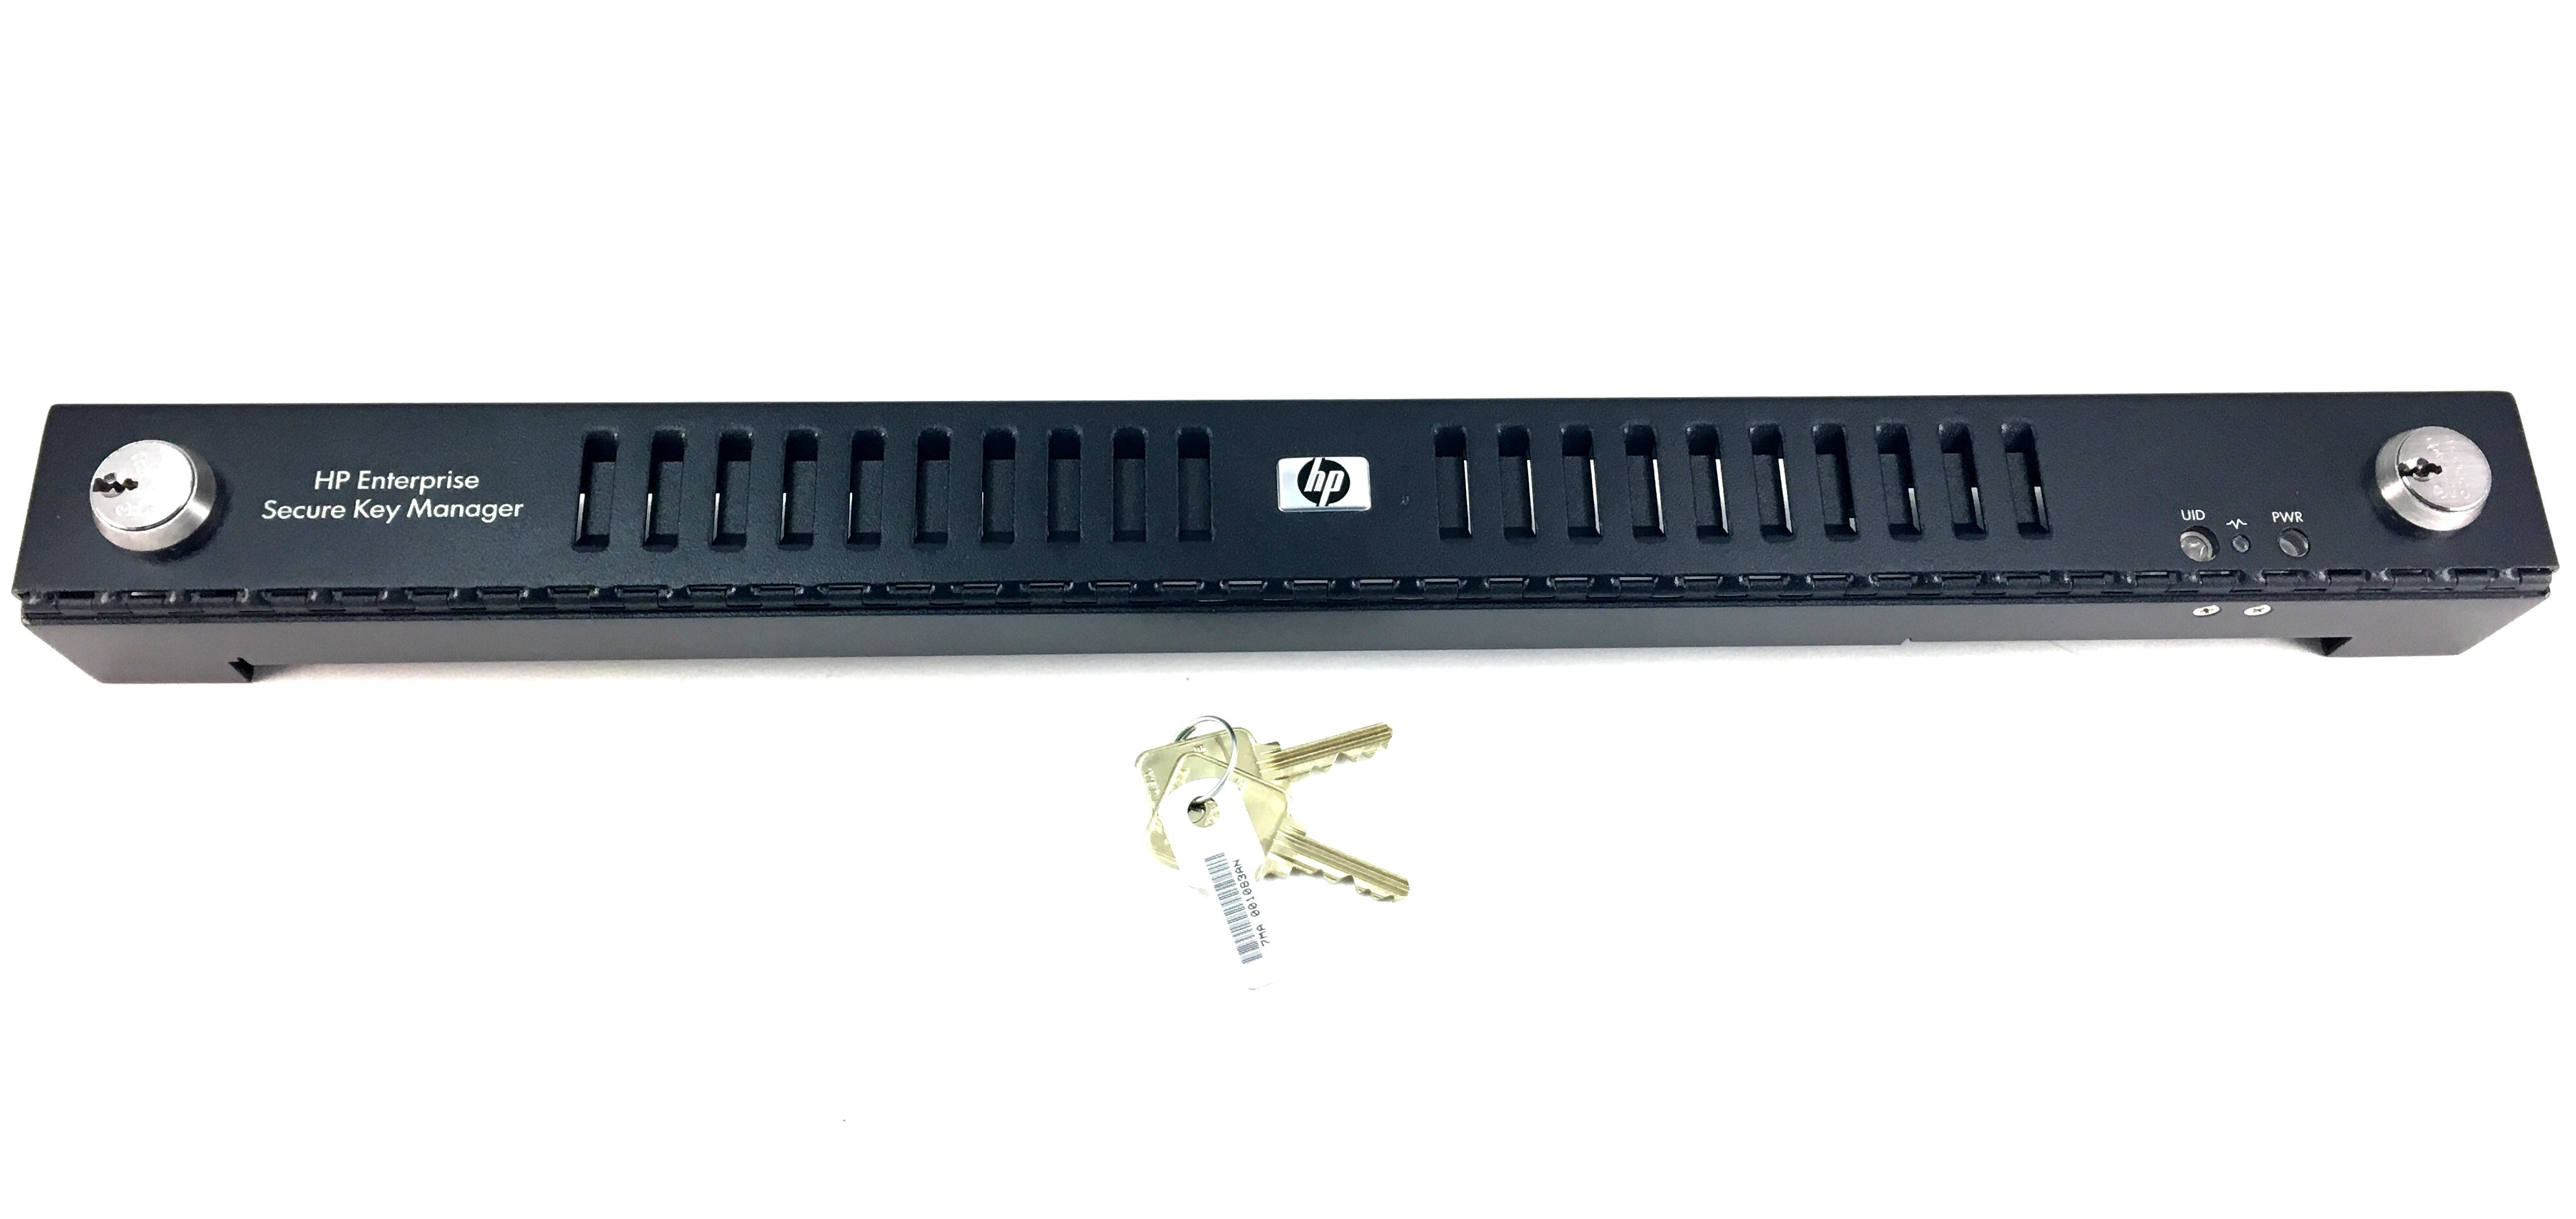 HP Enterprise Secure Key Manager Bezel (AJ575-2101B)